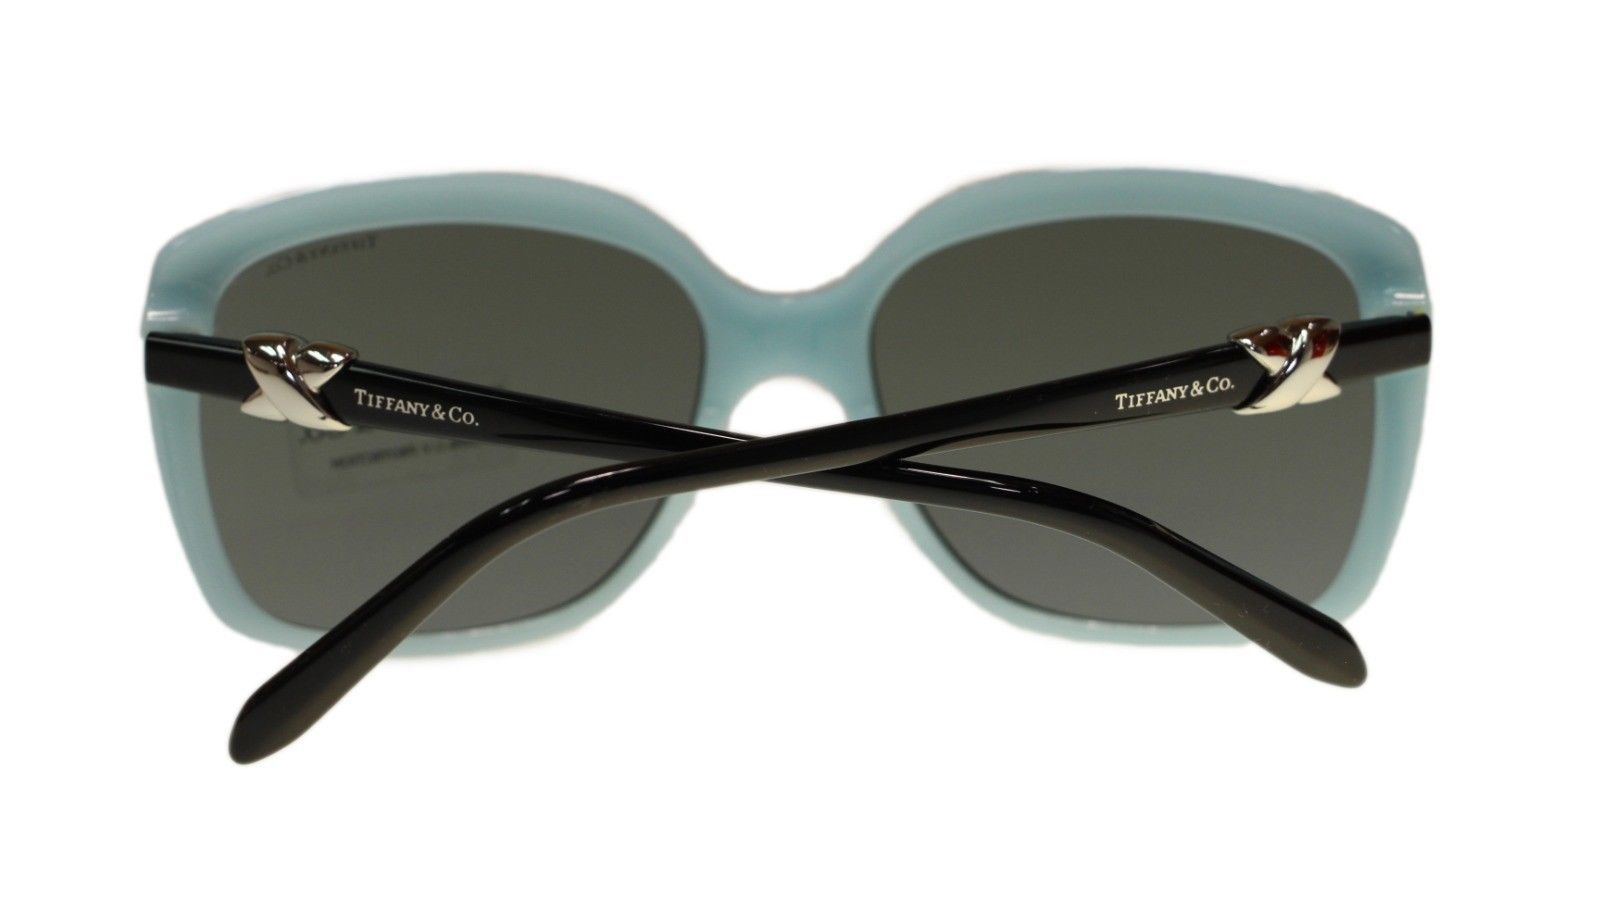 cbbdc9600c8 Tiffany TF4076 80553F Top Black Blue Square Women s Sunglasses 58mm  Authentic